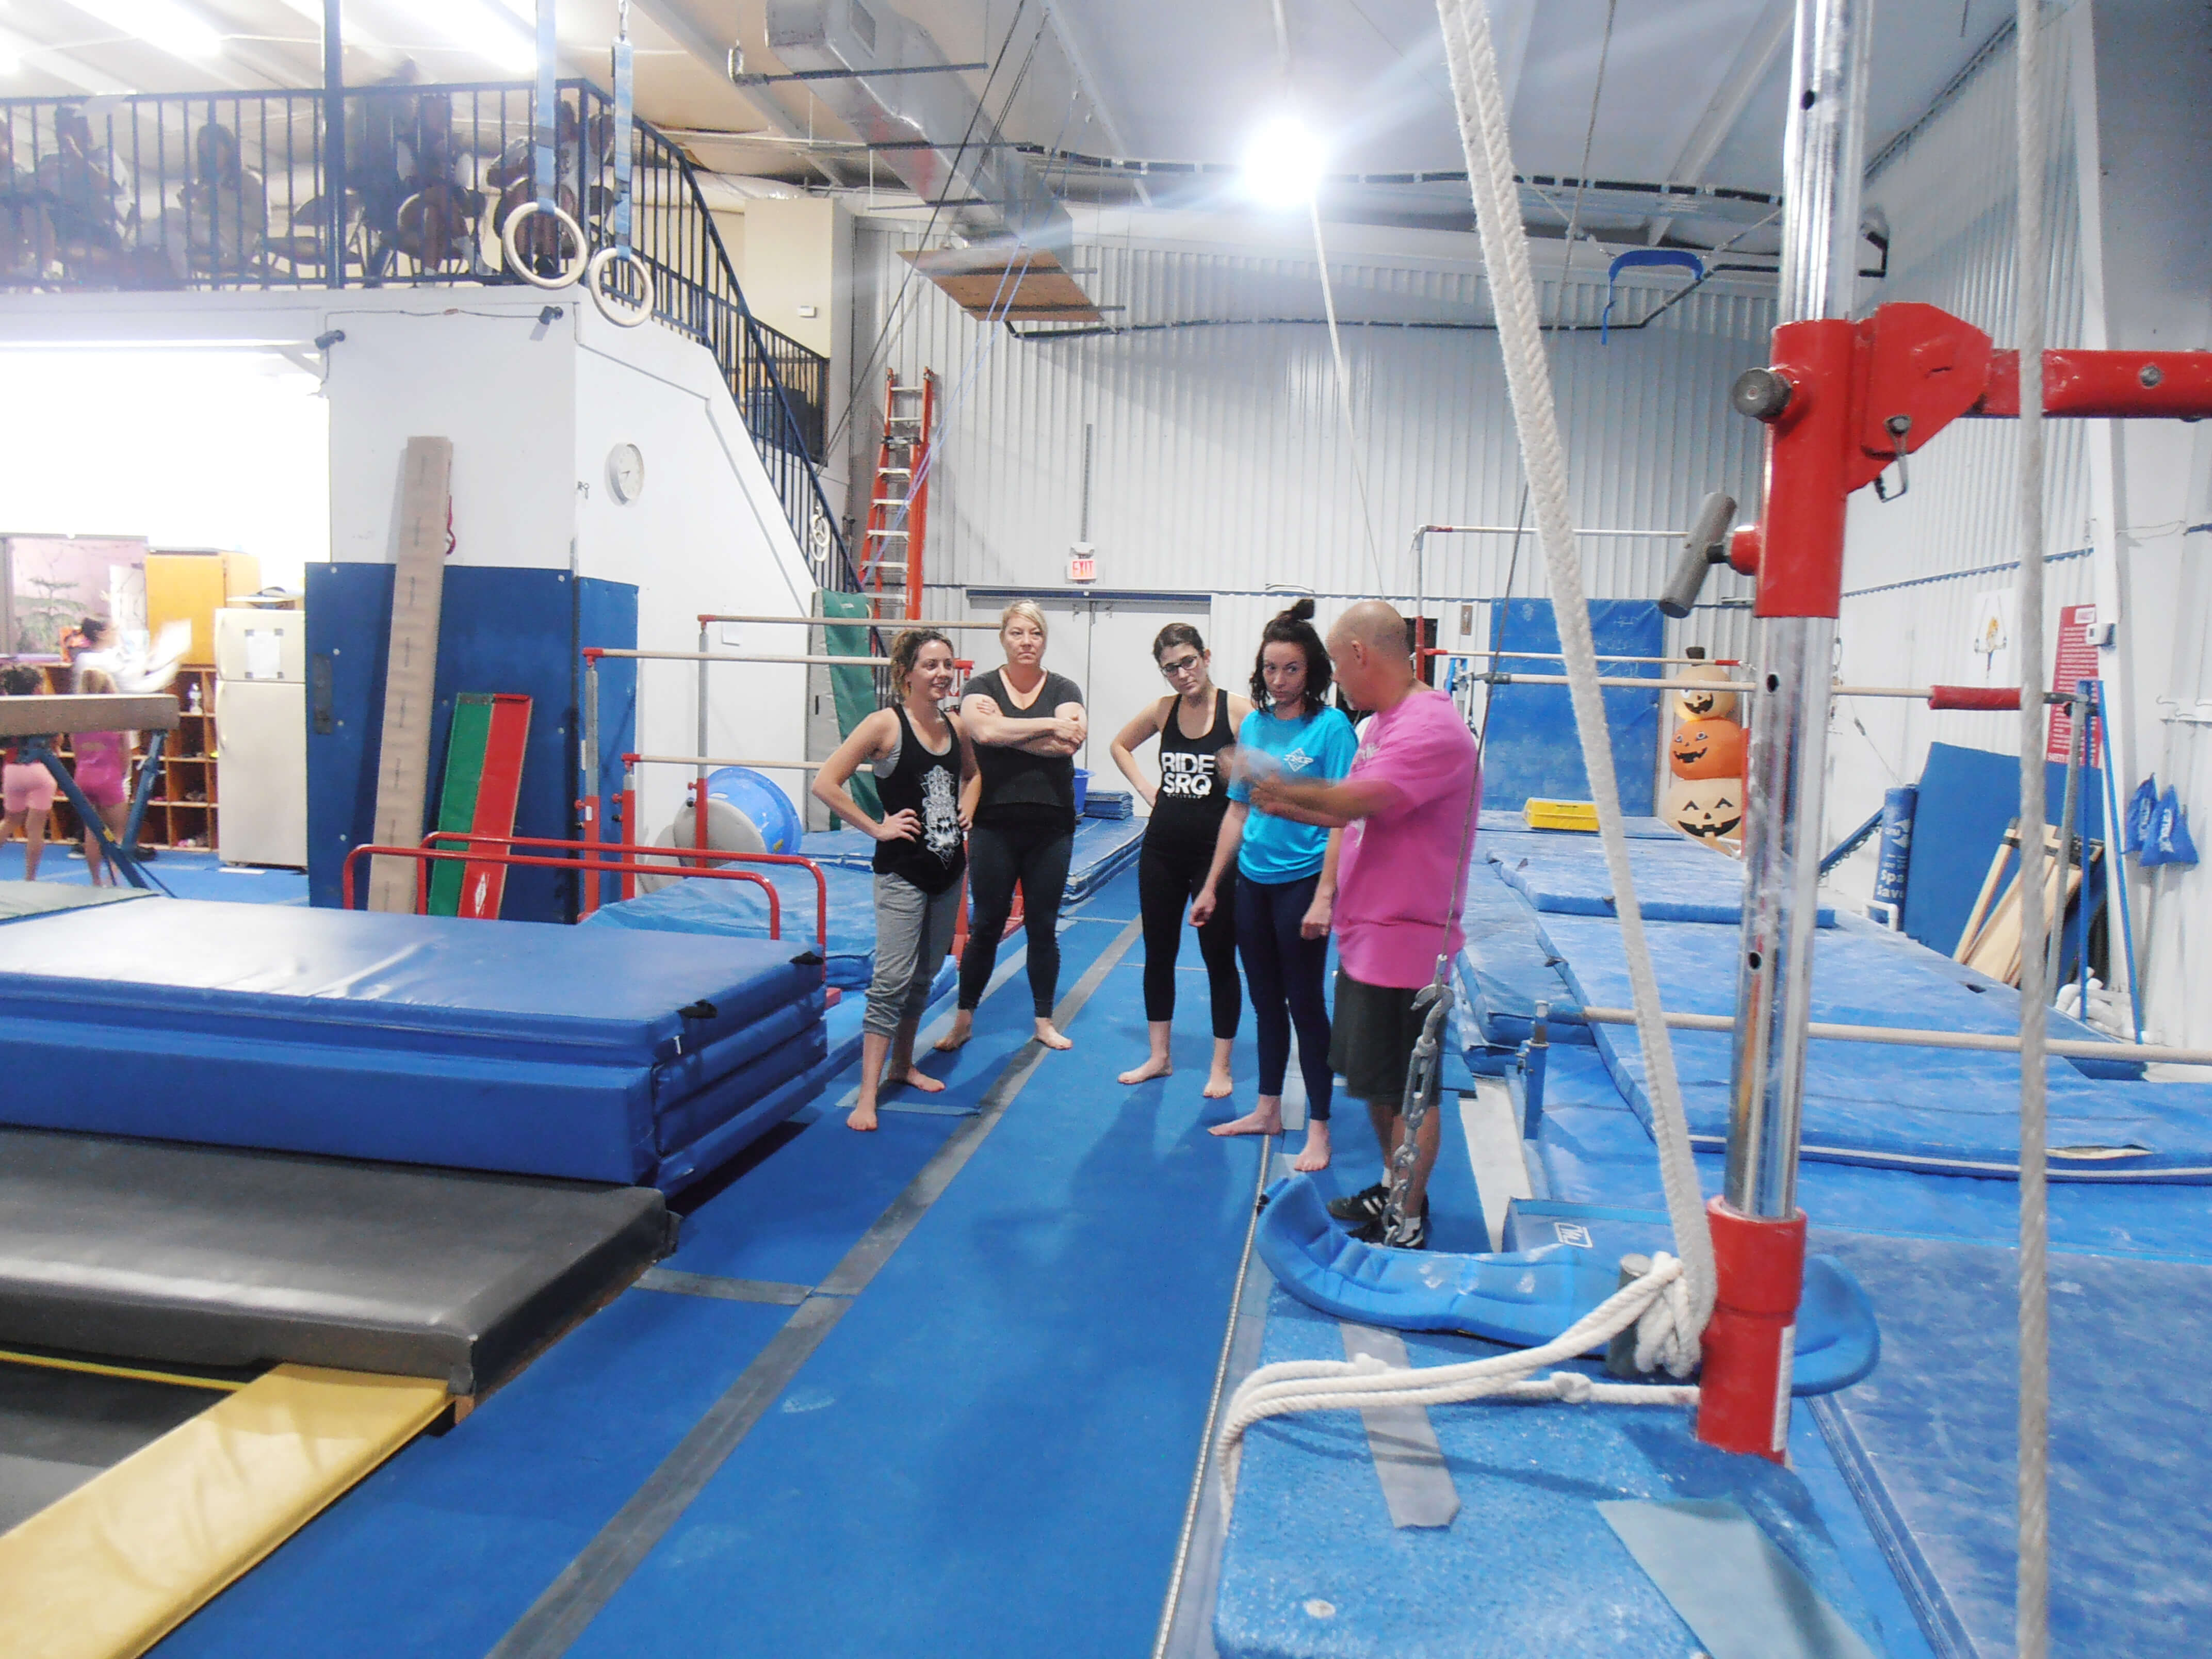 Men and Women learn gymnastics.